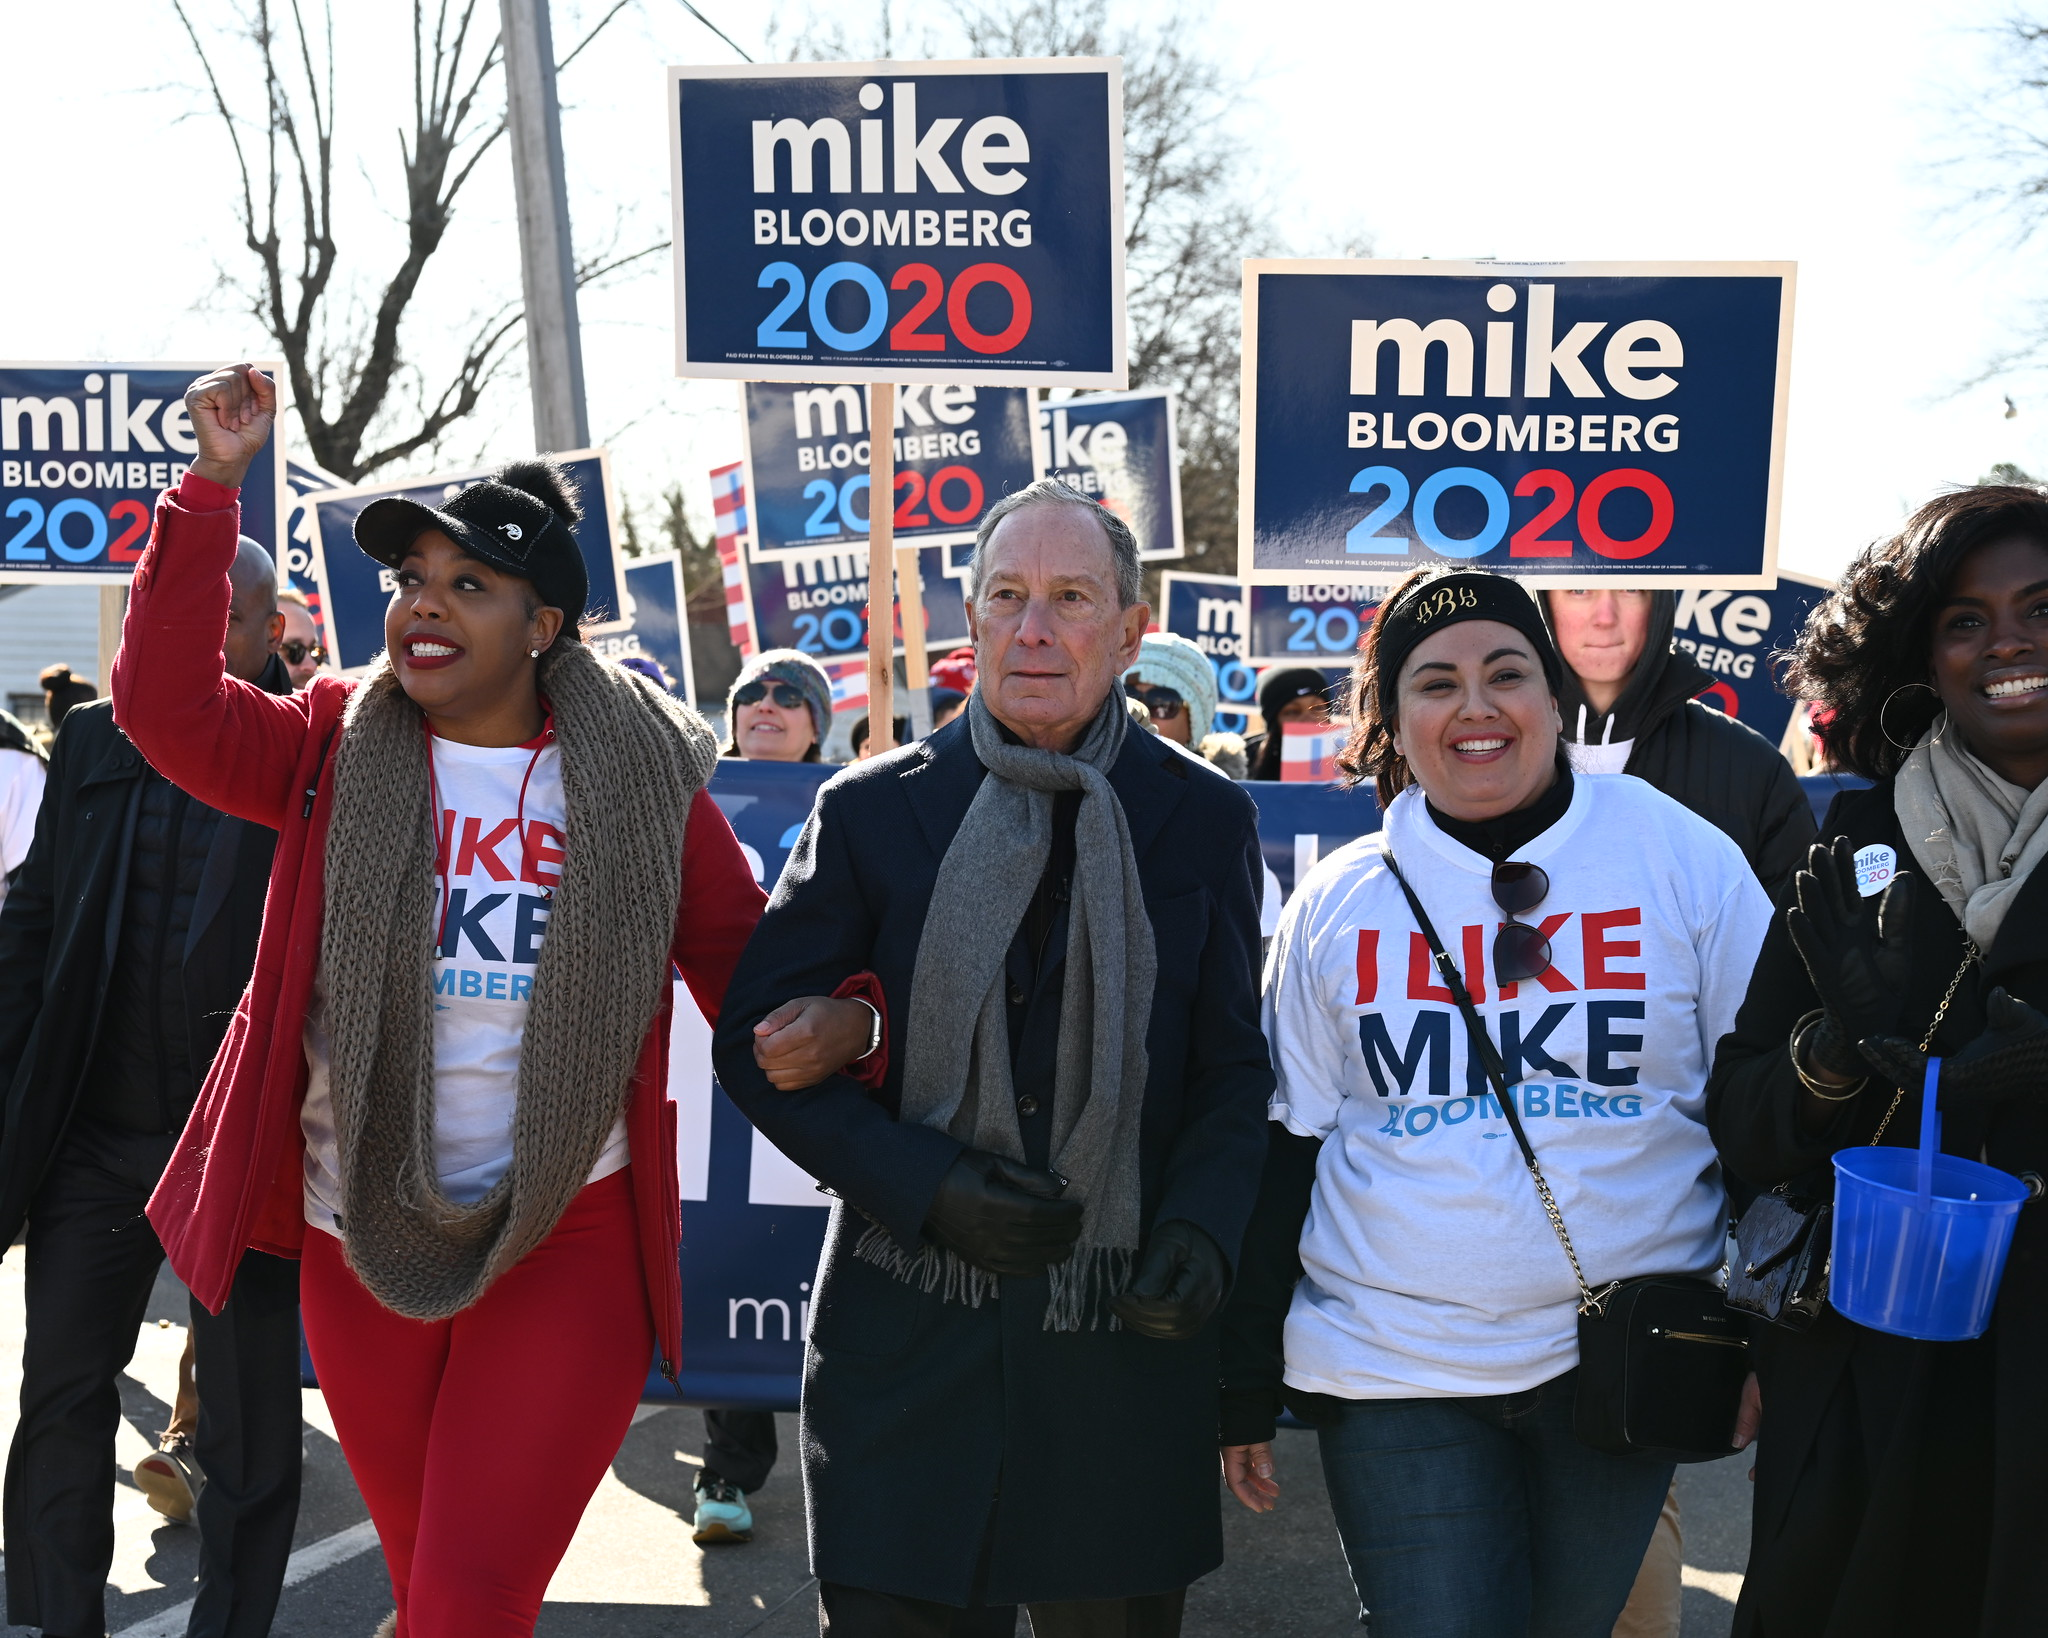 Mike attends an MLK Day Parade in Little Rock, AK